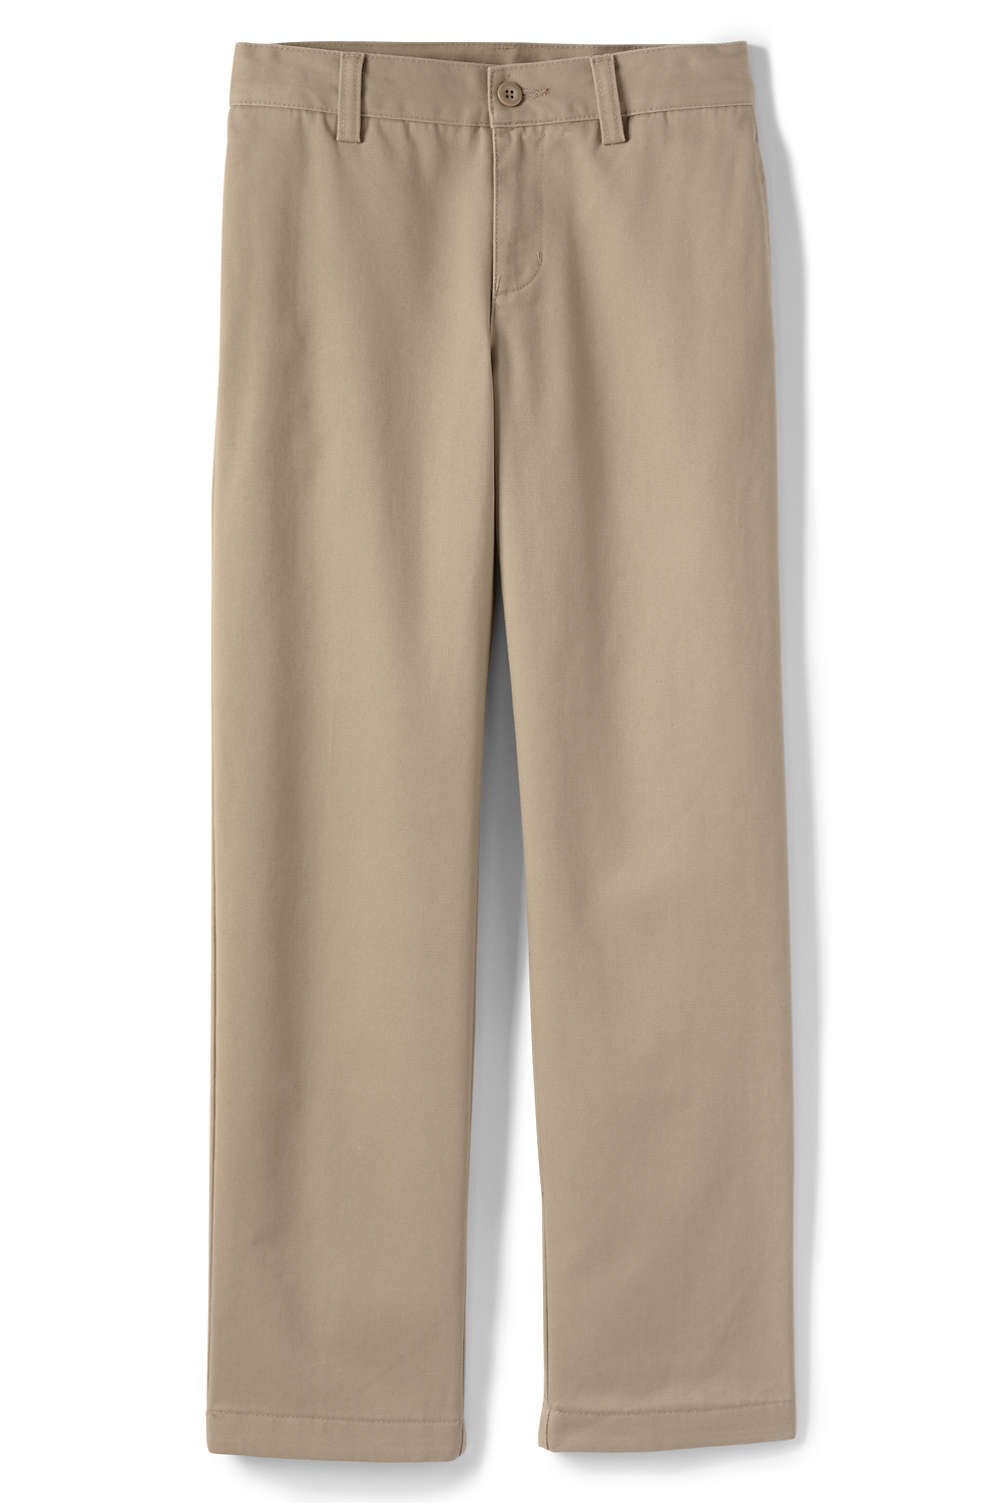 52e35efc8bf School Uniform Boys Iron Knee Stain Resistant Wrinkle Resistant Plain Front  Chino Pants from Lands  End